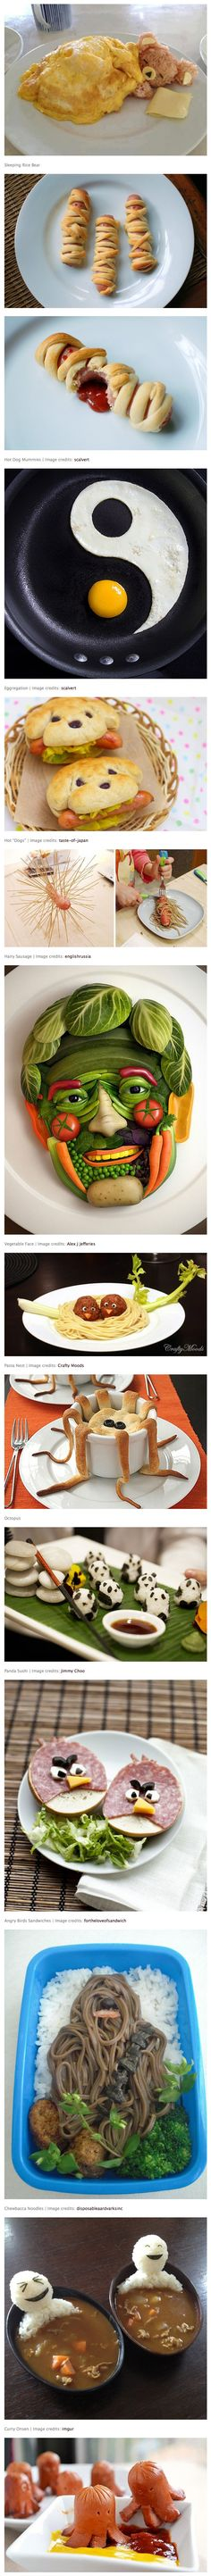 Cool and Creative Food Art Ideas